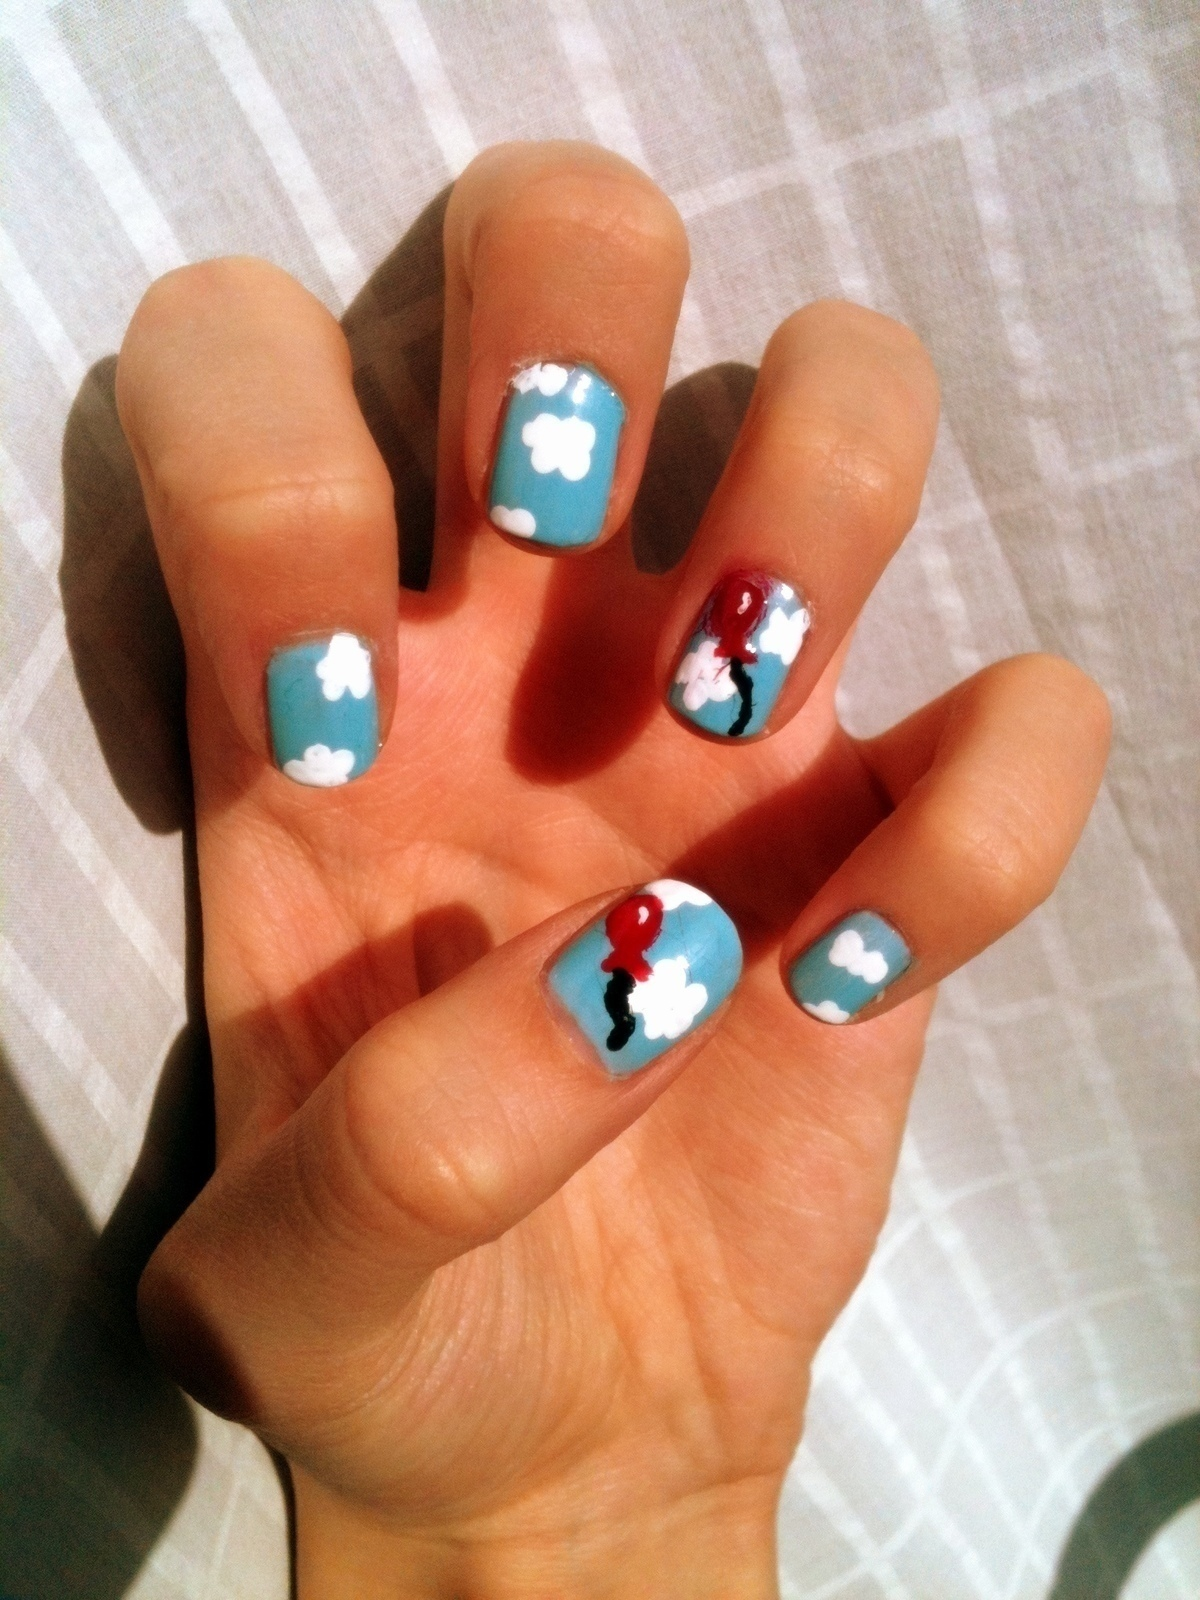 Oh Cloudy Day · Patterned Nail Art · Nail Painting And